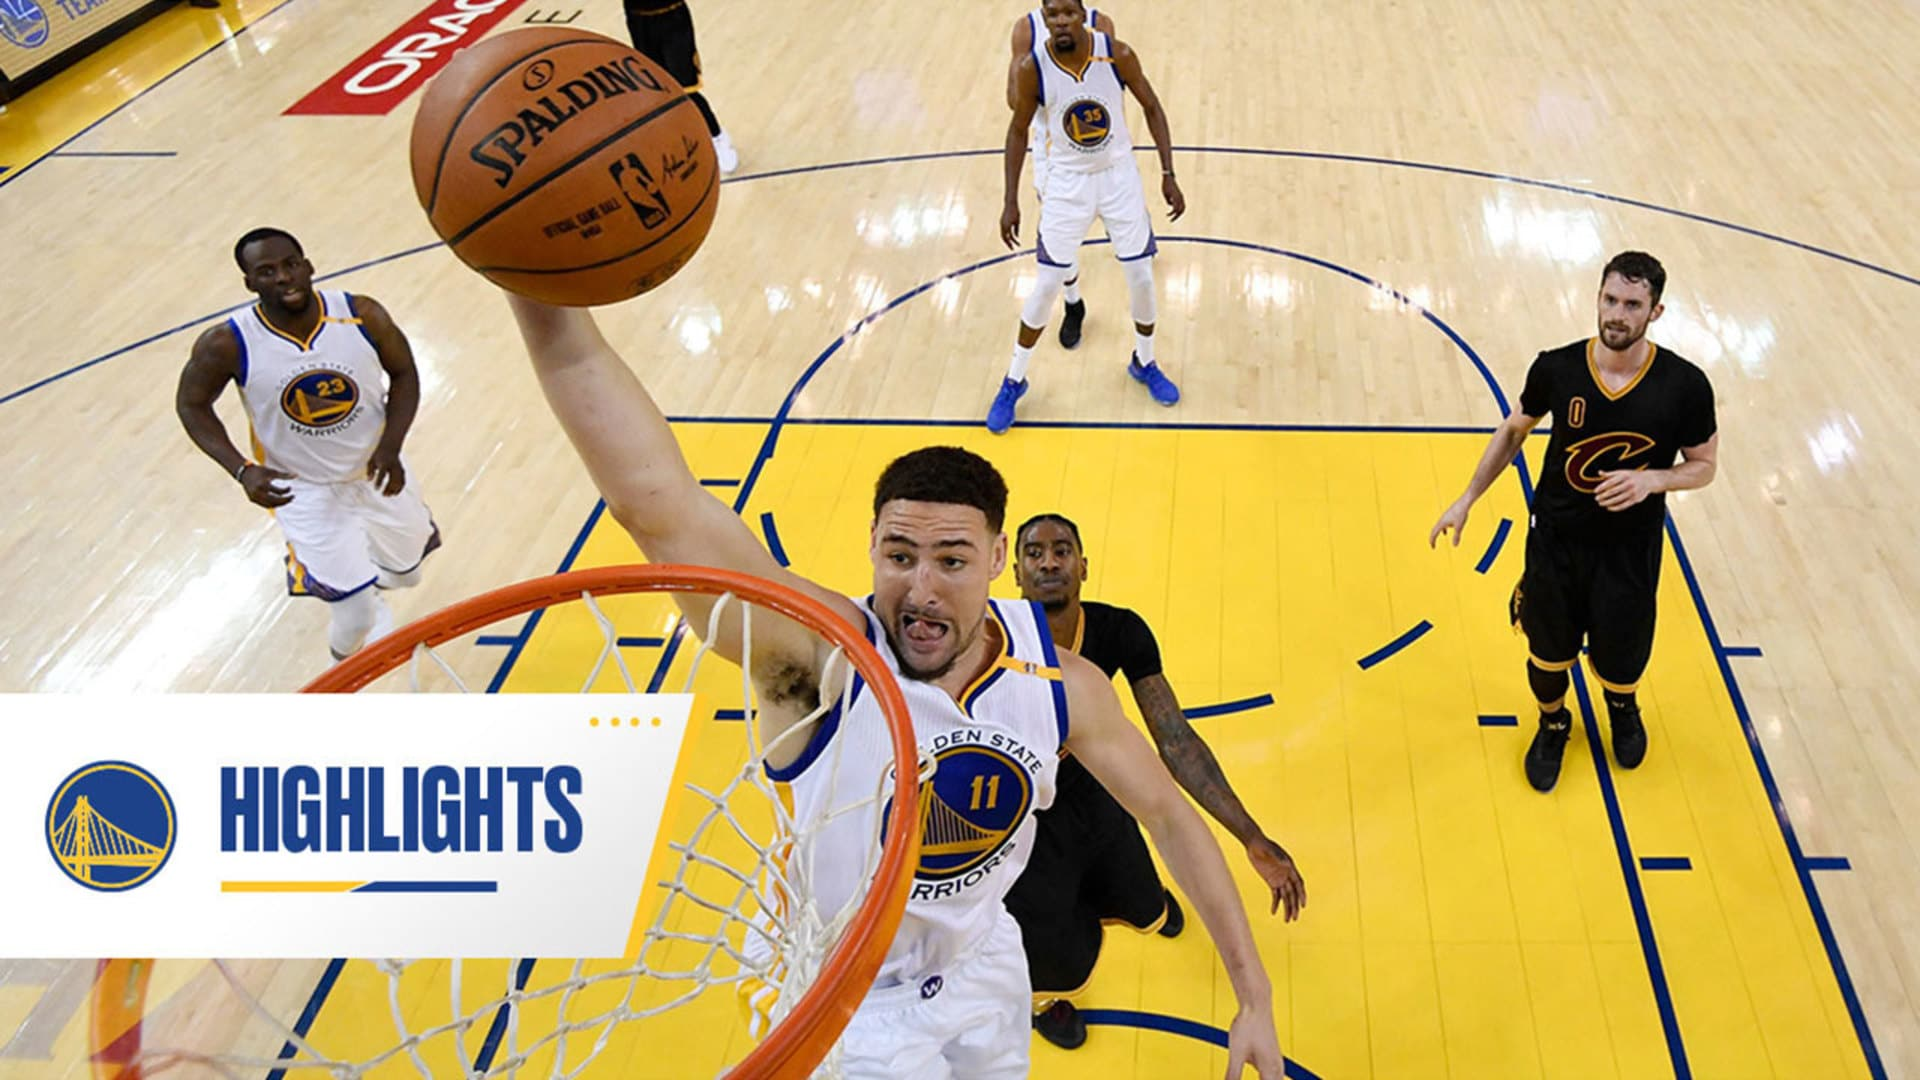 Splash Brother Slams: Klay Thompson's Top Dunks